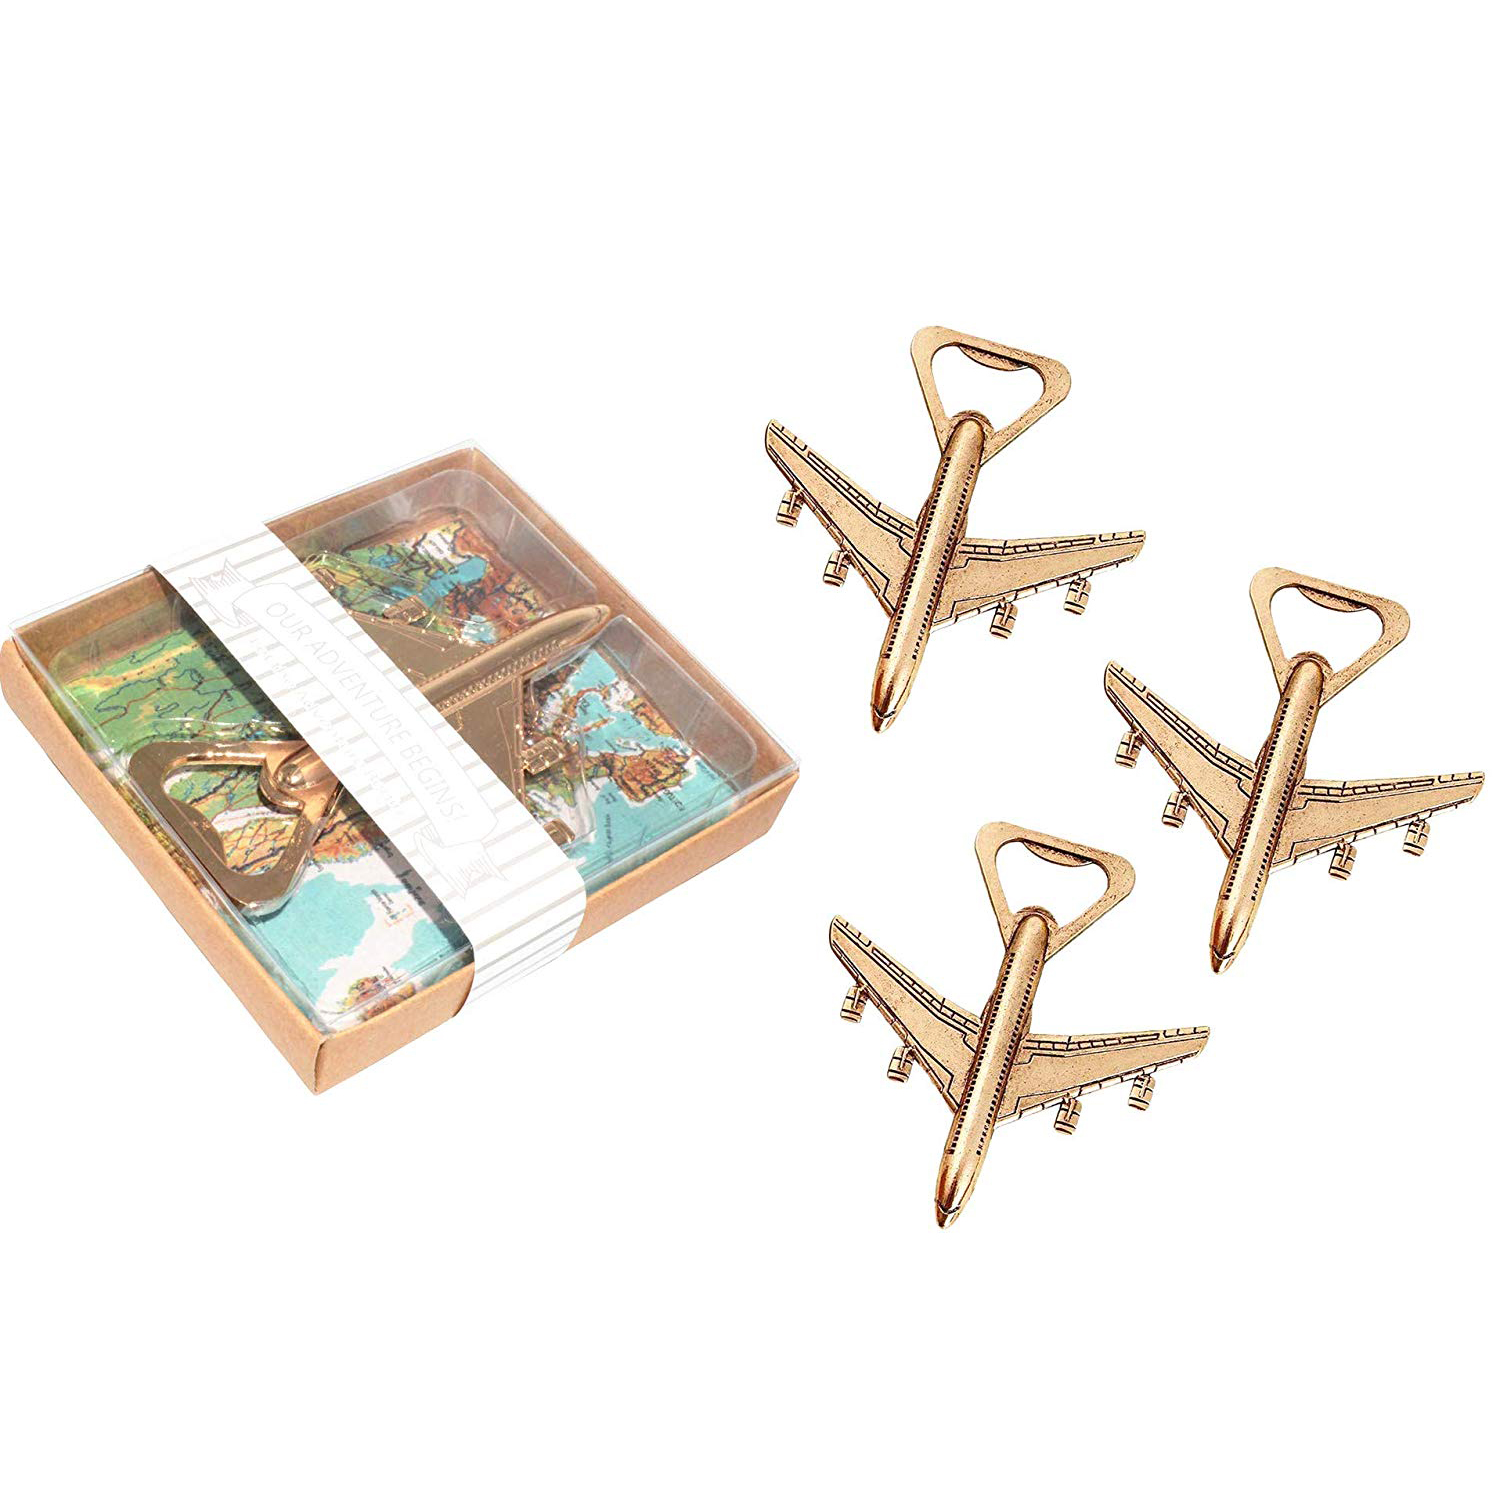 Pack of 12 Airplane Bottle Opener Gift Box Air Plane Travel Beer Bottle Opener Party Favor Wedding Birthday Decorations image